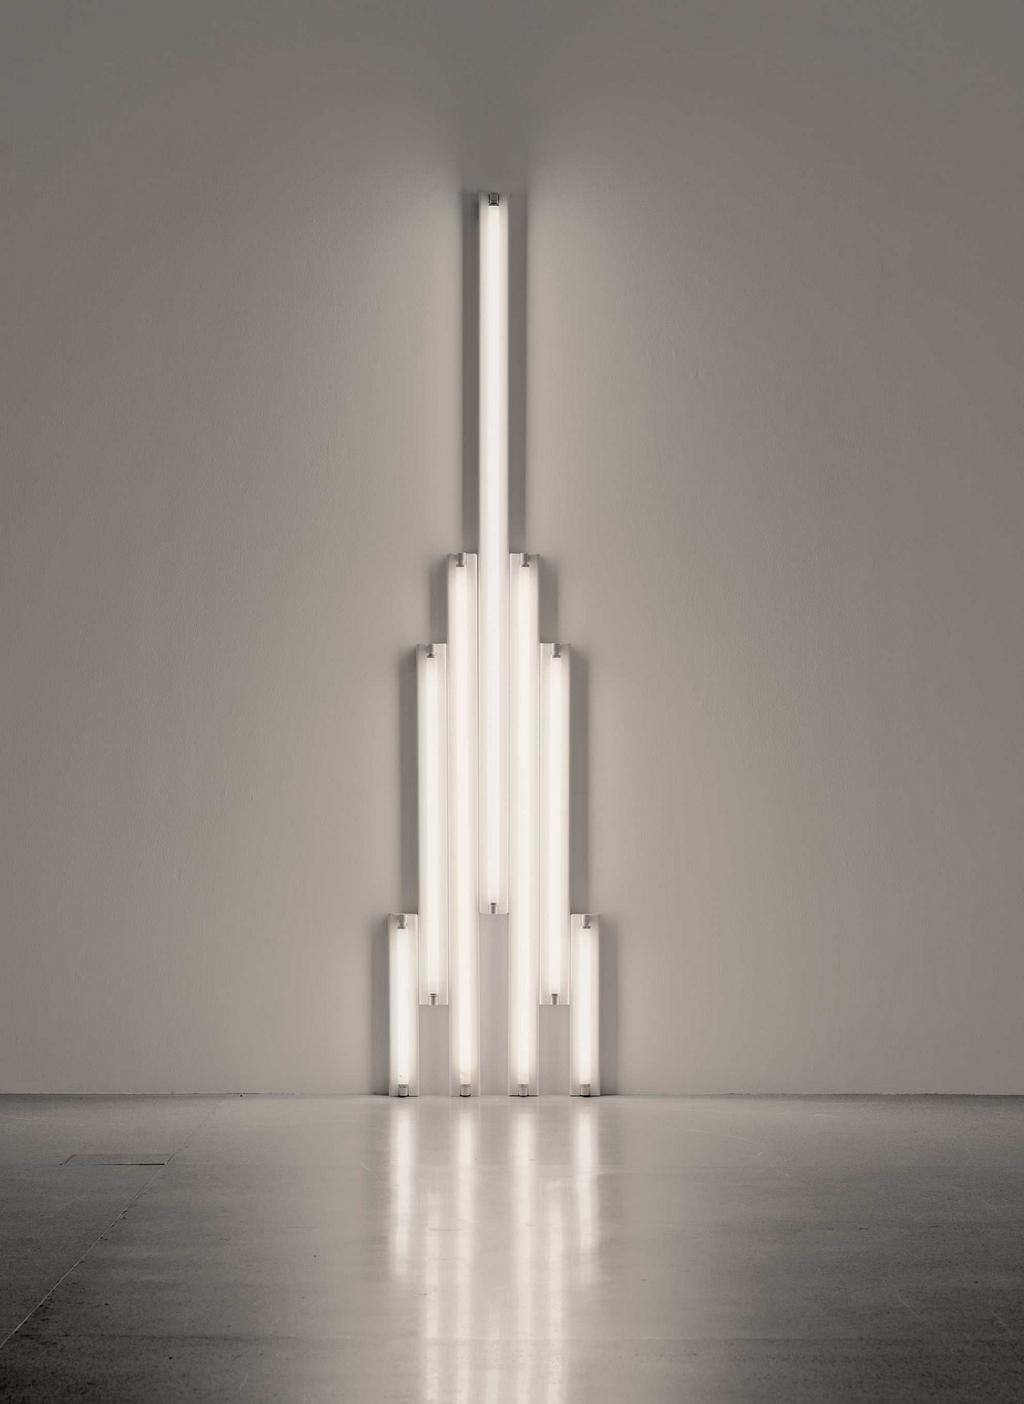 Dan Flavin / monument for Tatlin, 1966